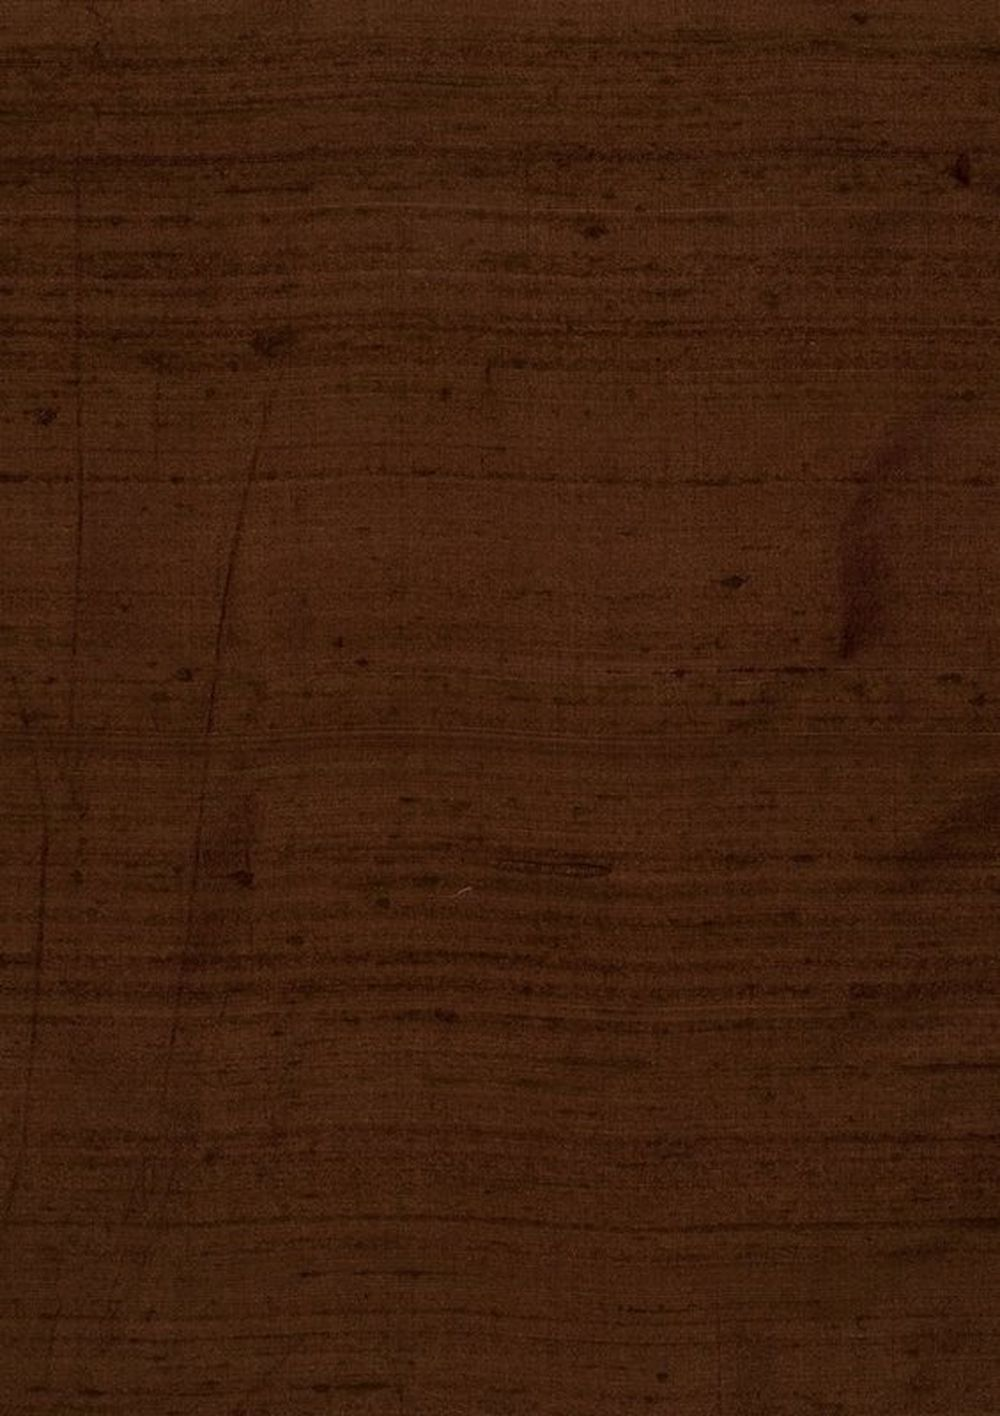 Photo of the fabric Luxury Chestnut-029 swatch by James Dunlop. Use for Drapery. Style of Plain